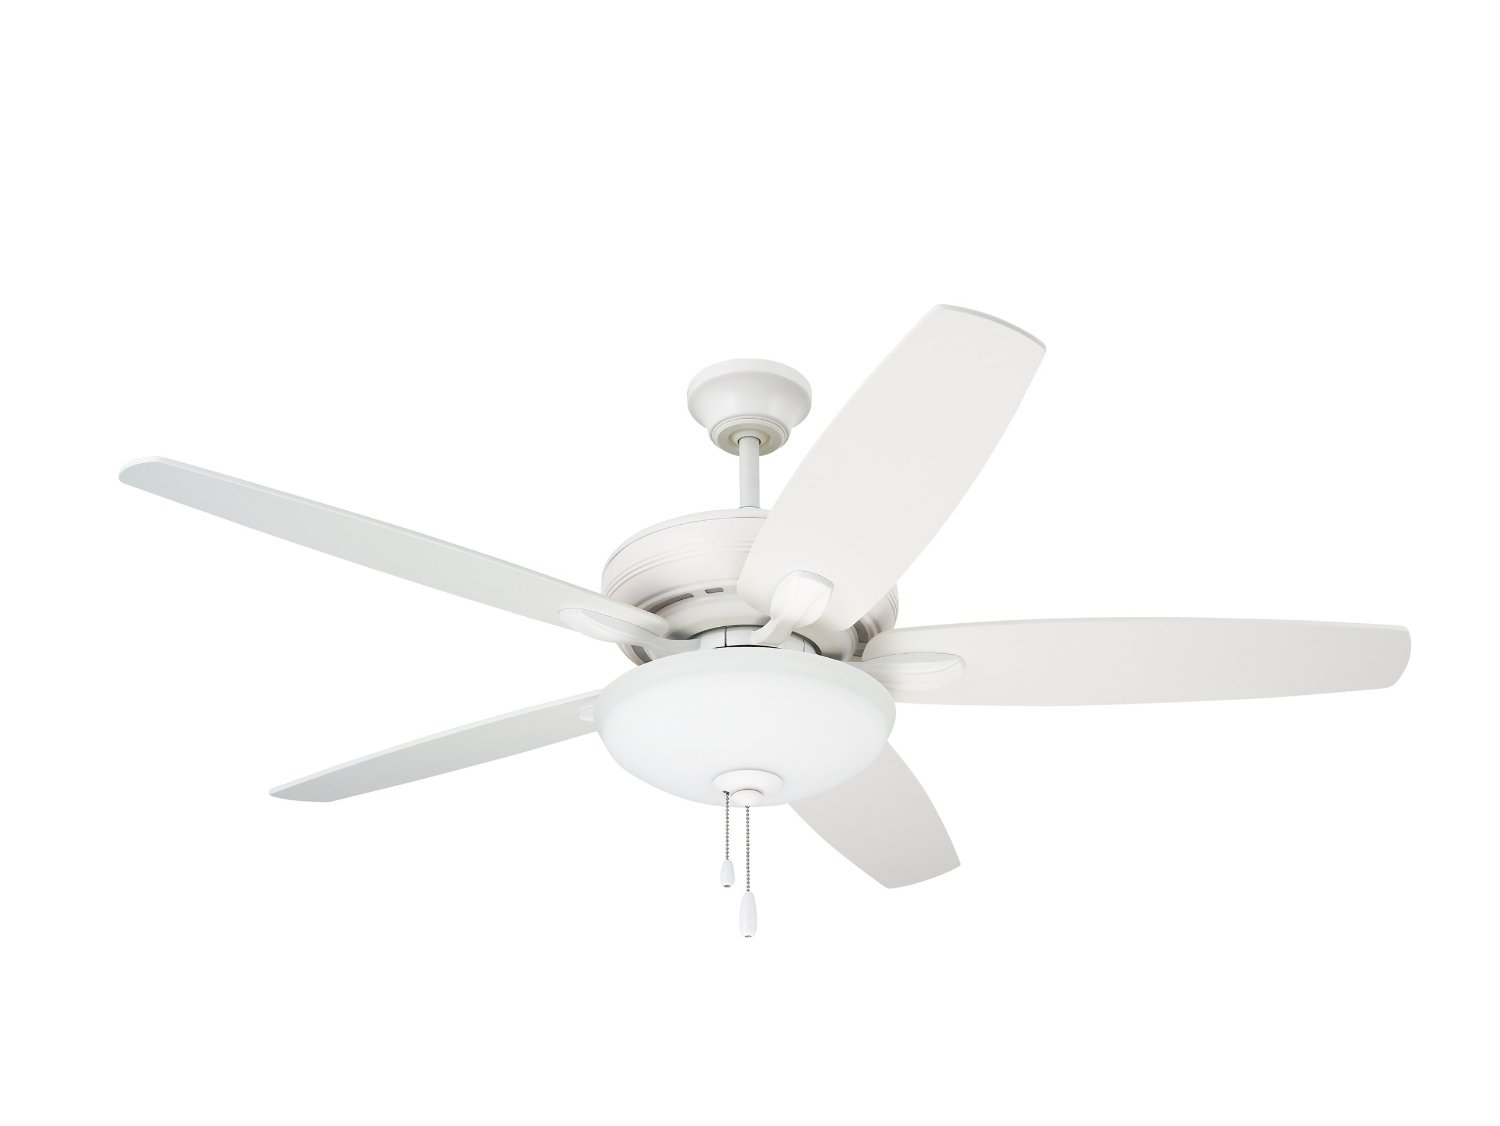 Buy Emerson Ceiling Fans Cf717sw Ashland 52 Inch Low Profile Hugger Ceiling Fan With Light Satin White Finish In Cheap Price On M Alibaba Com